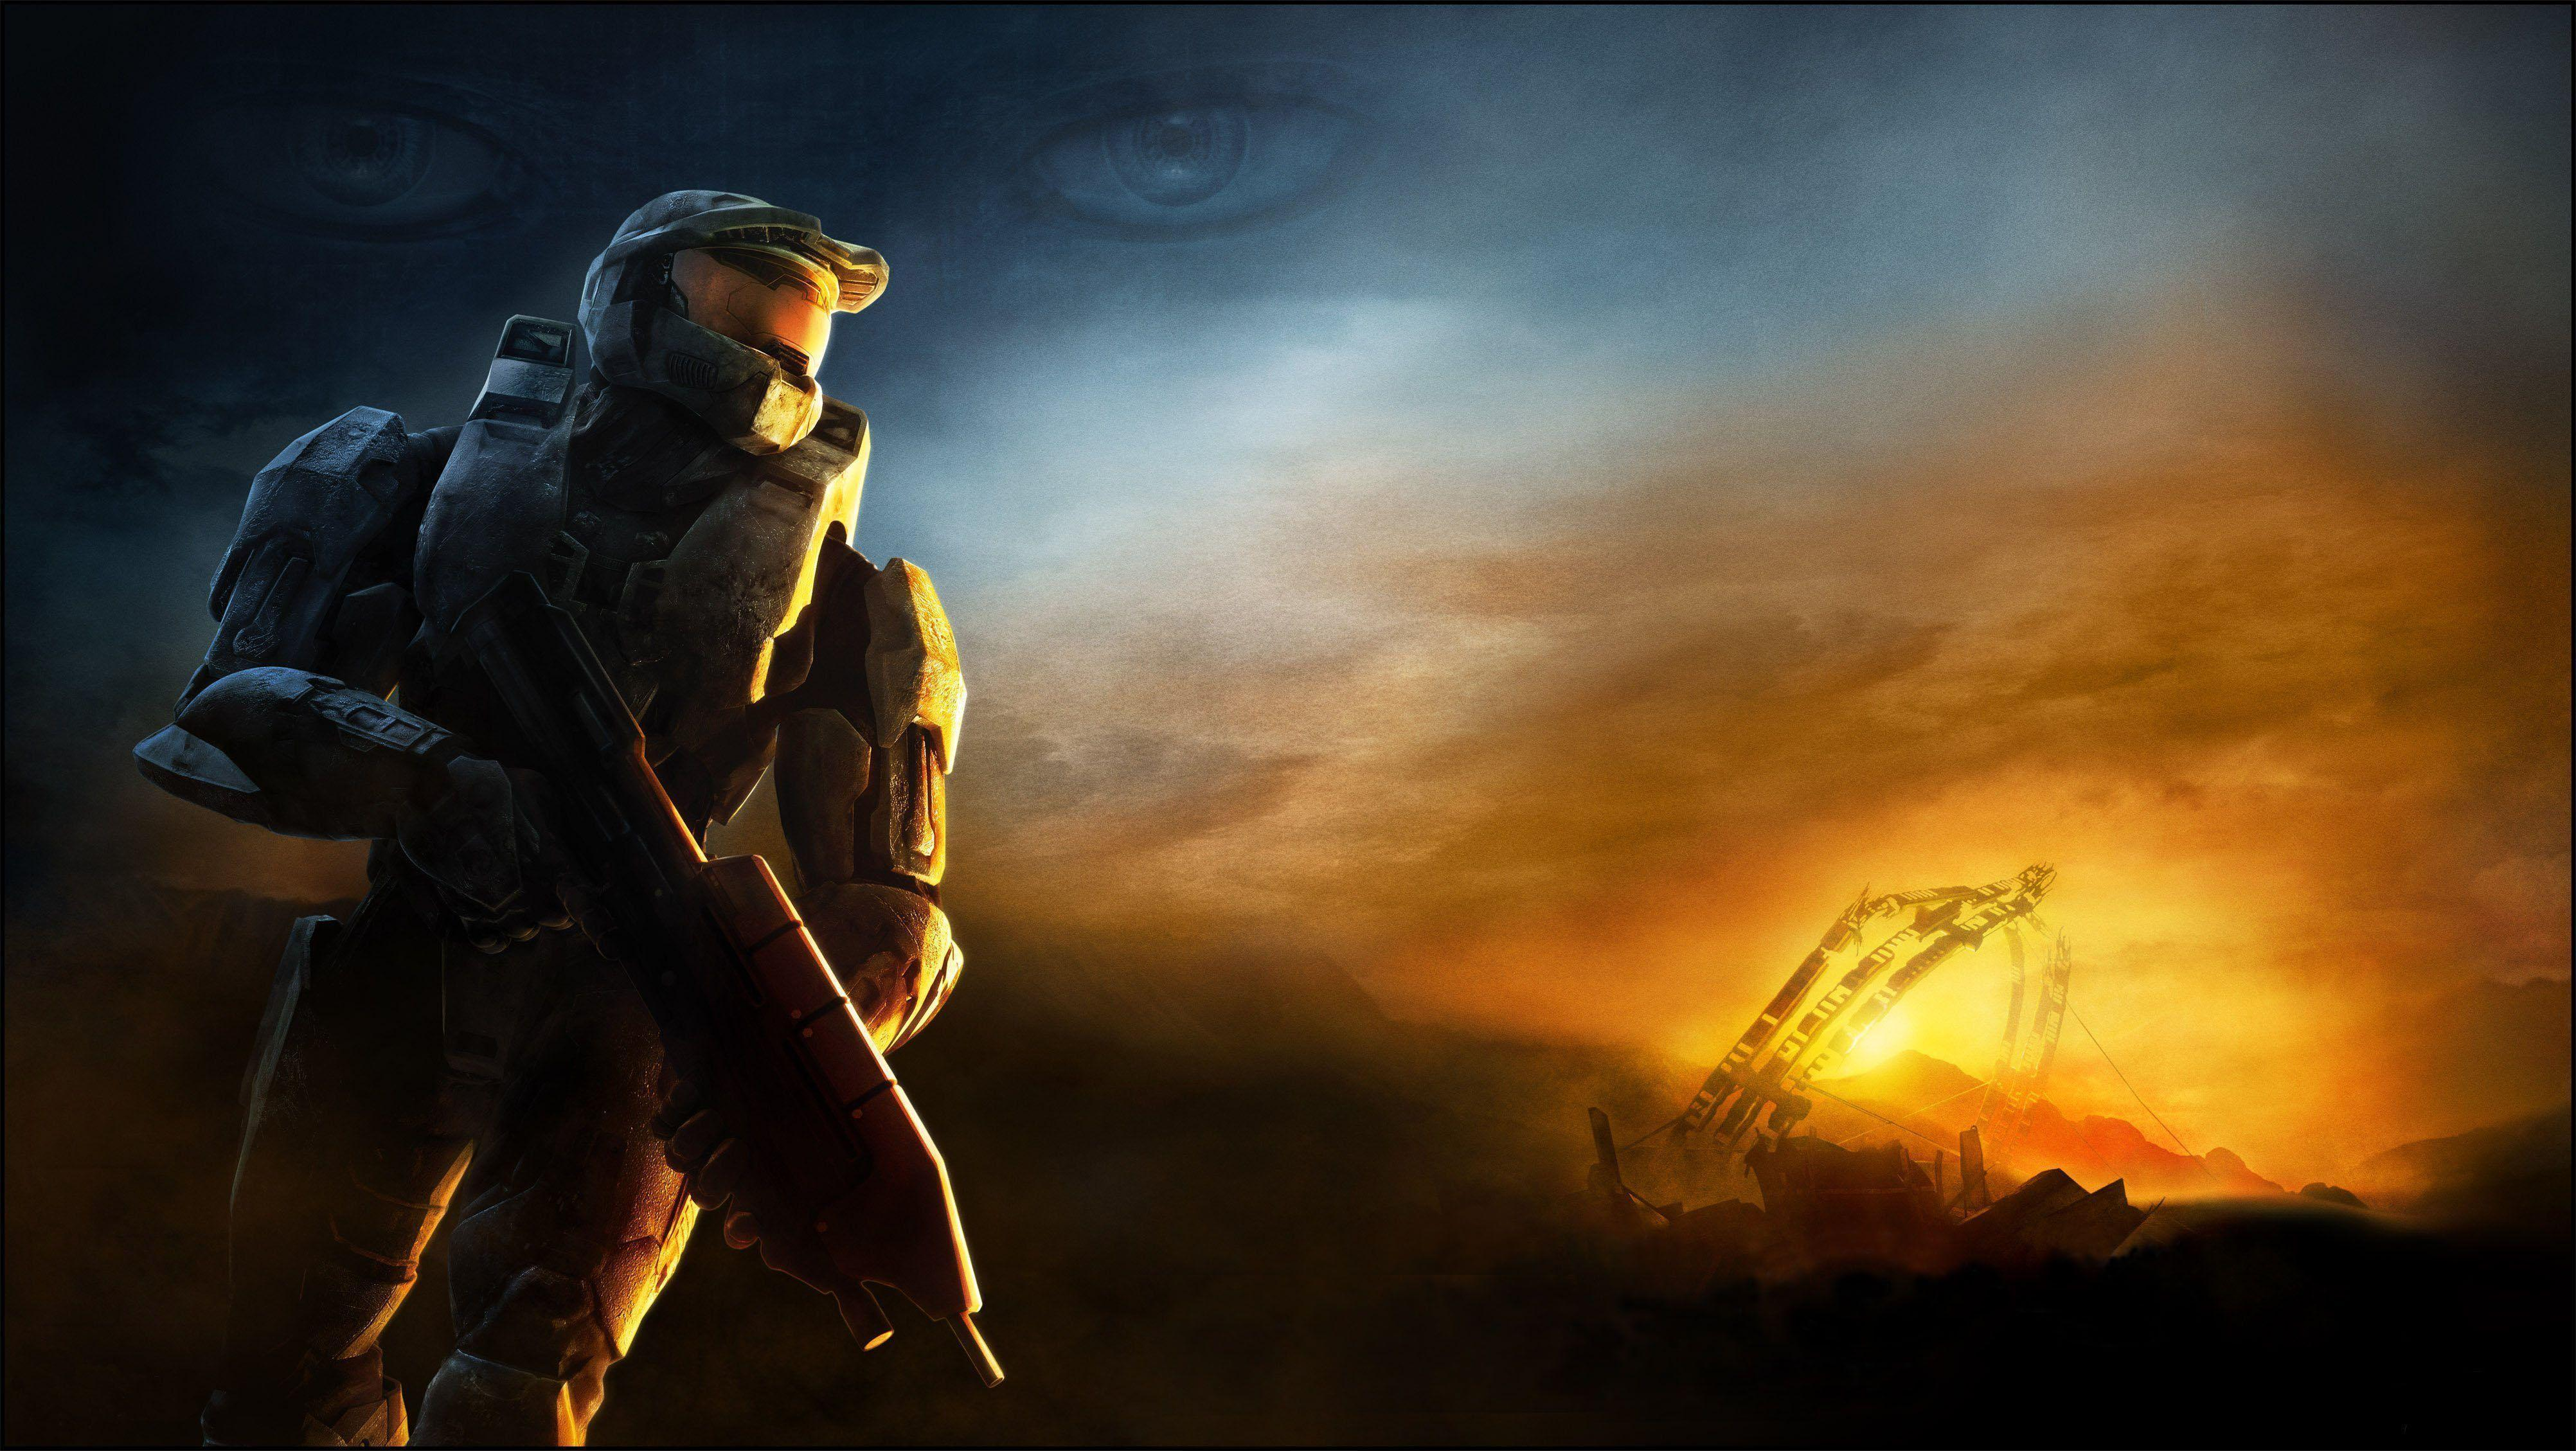 Halo Wallpaper, wallpaper, Halo Wallpapers hd wallpaper, backgrounds